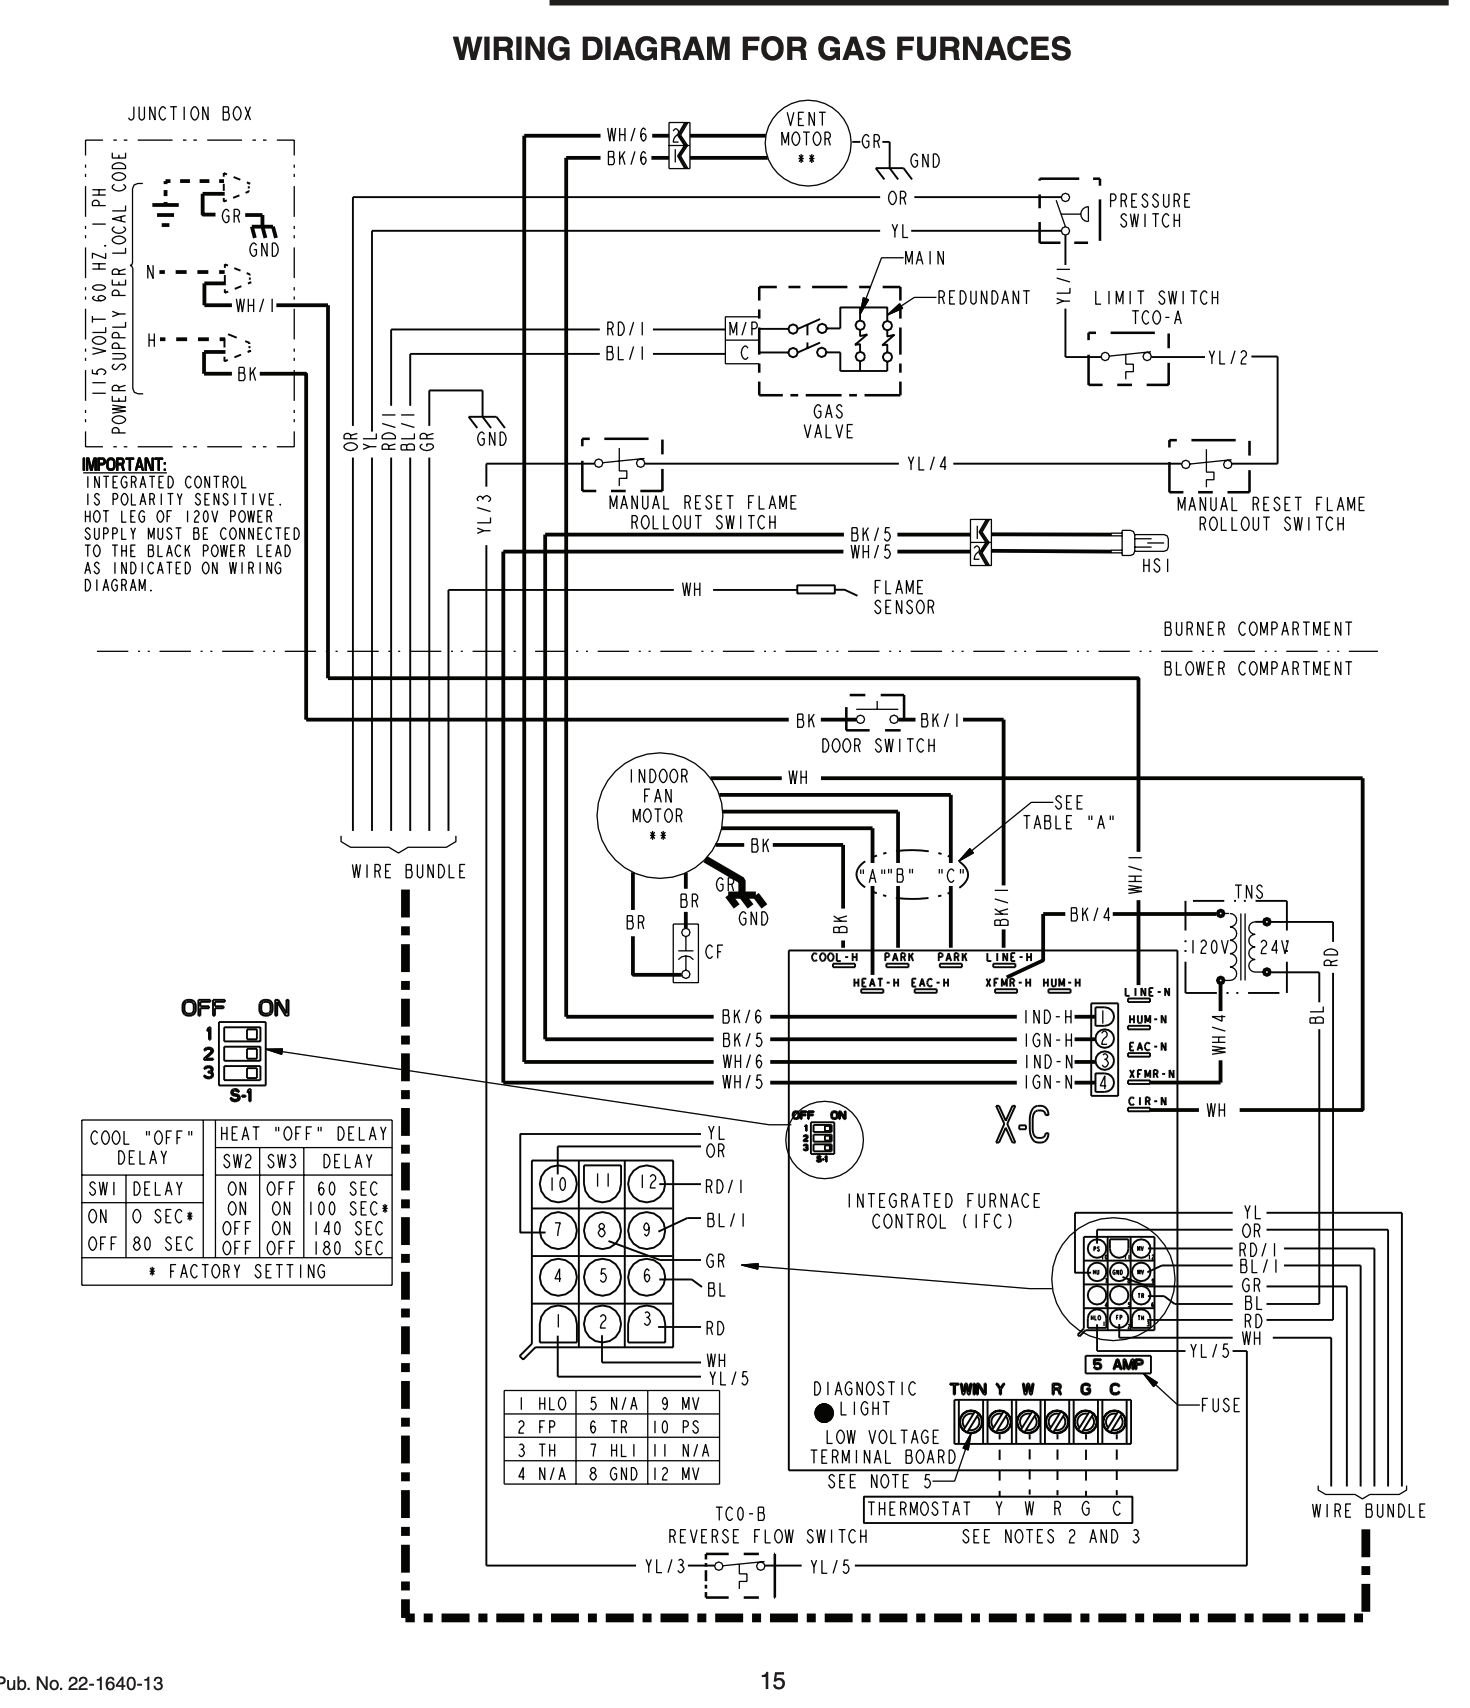 Fenwal Ke554695 Ignition Module Wiring Diagram | Wiring Diagram - 7 Terminal Ignition Switch Wiring Diagram